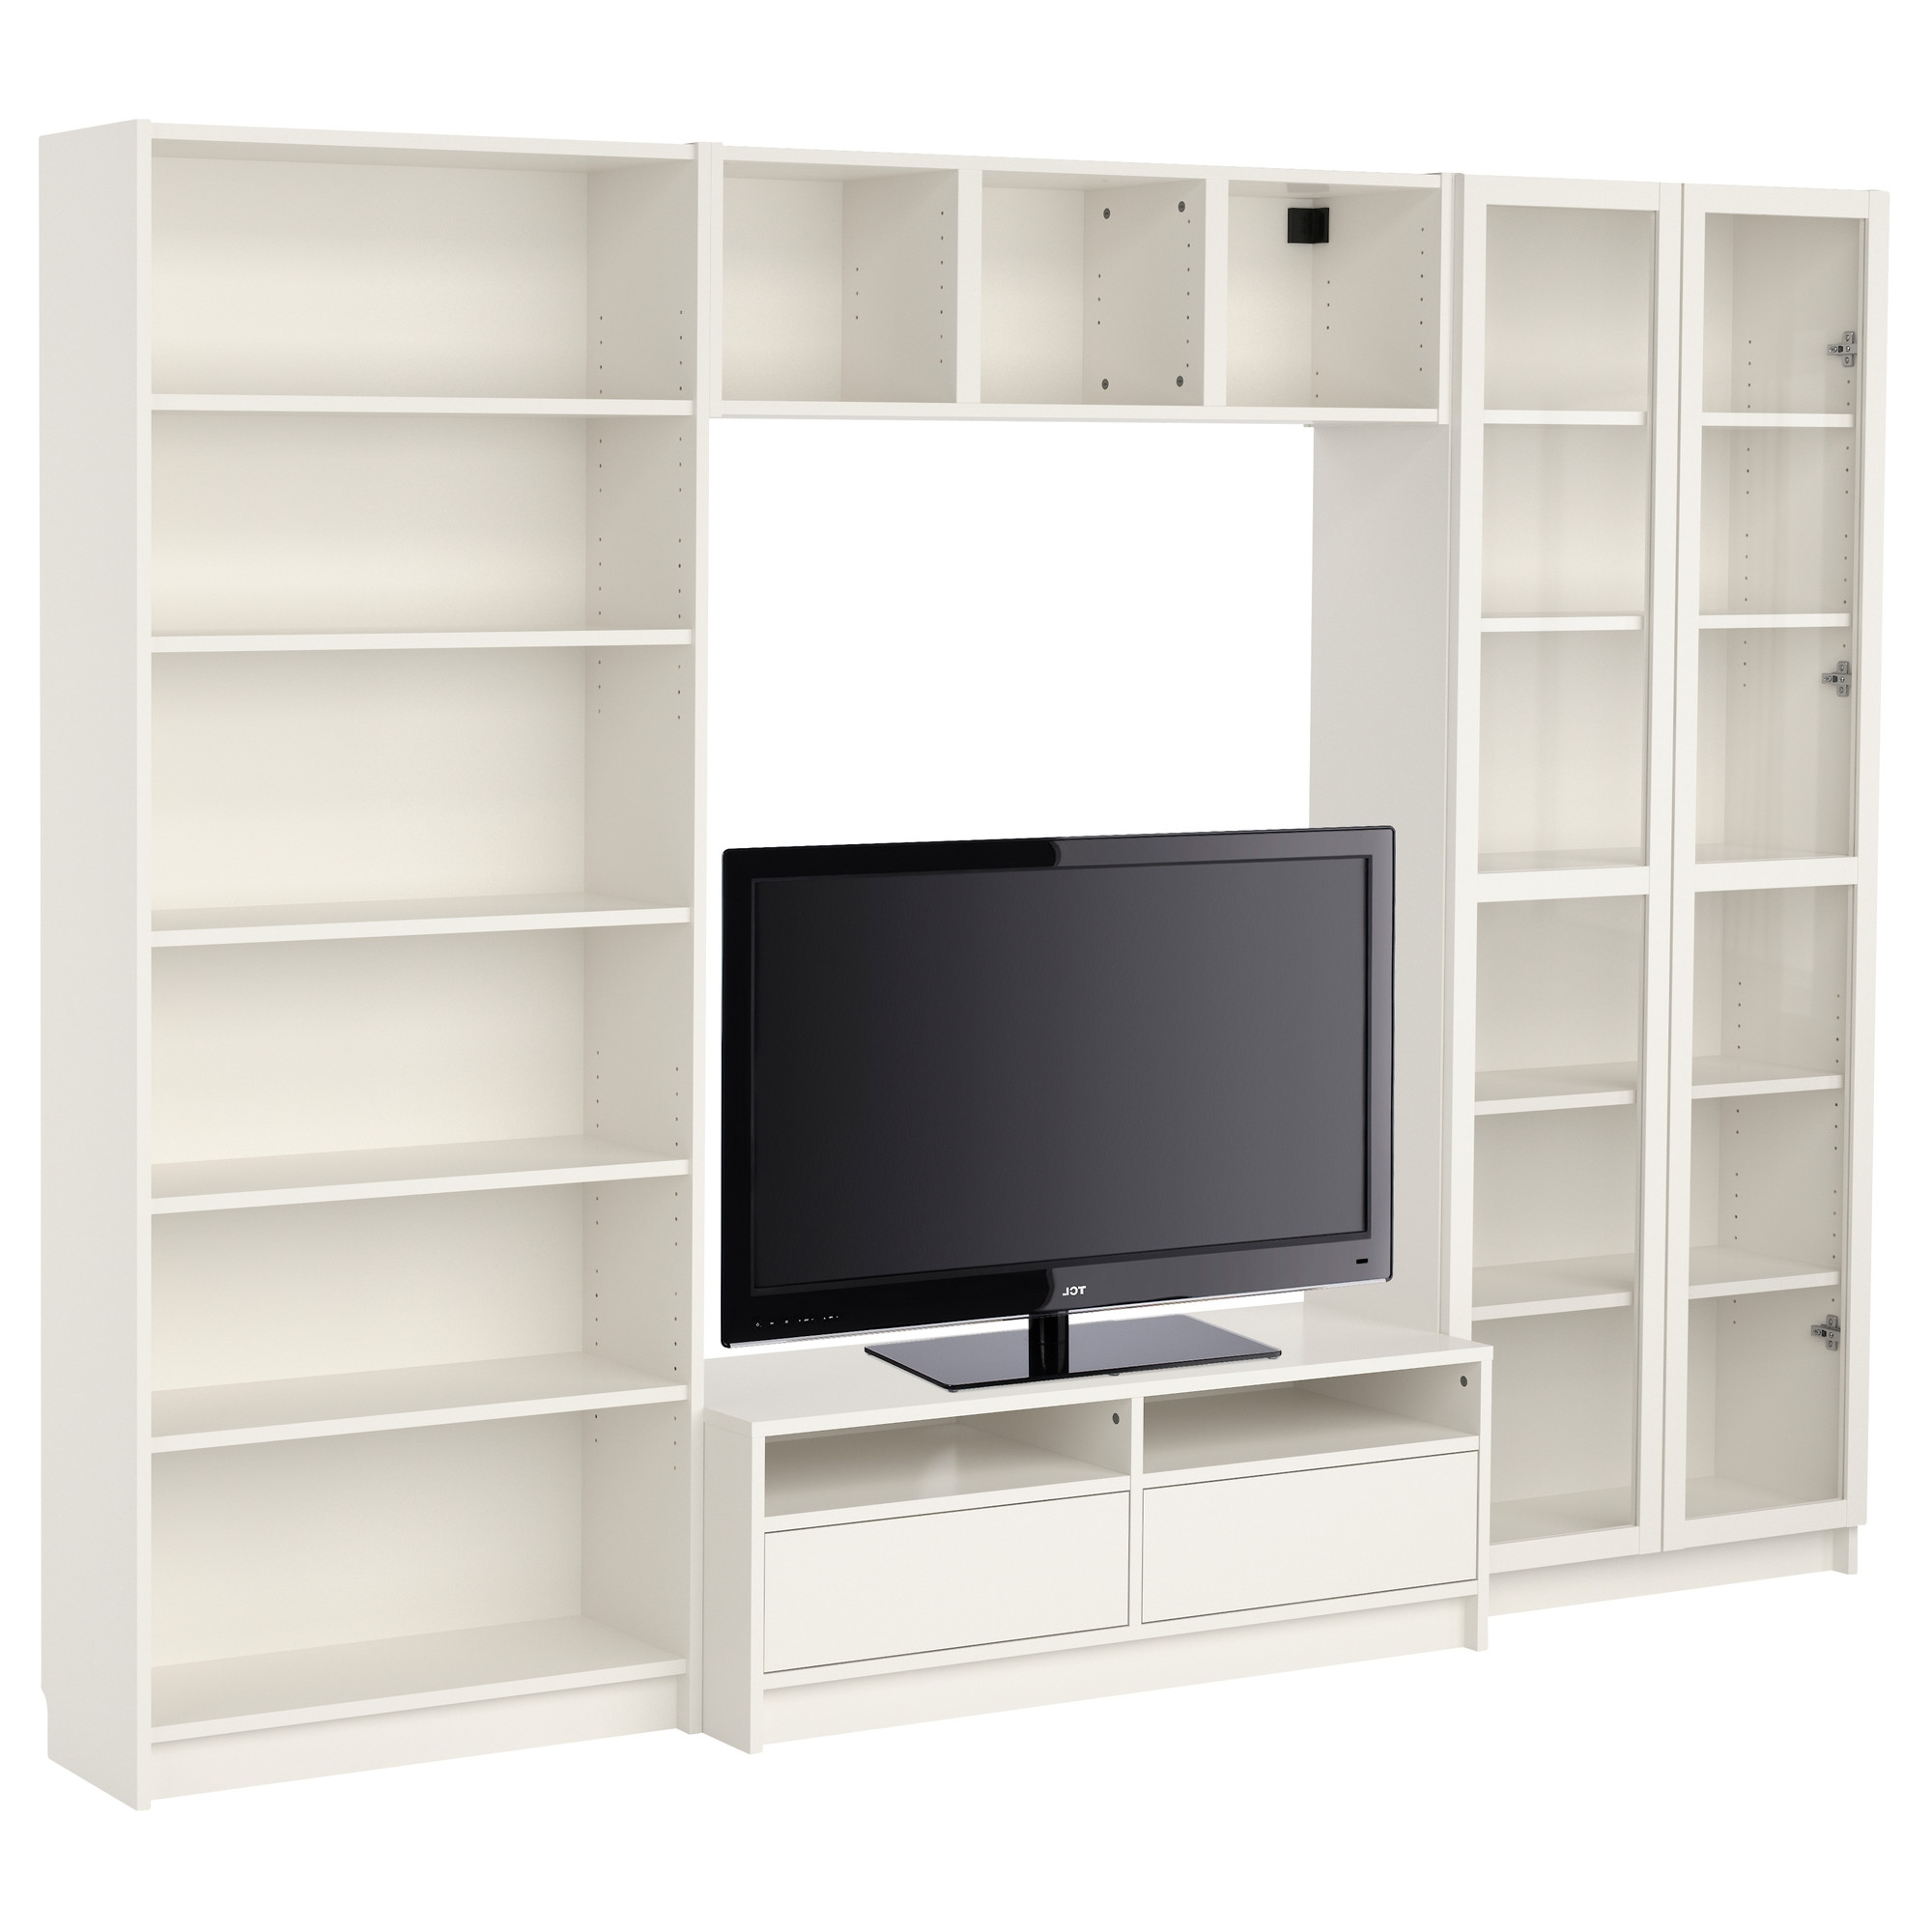 modern white best about bench storage bookshelf with district of bookcase bin bookcases